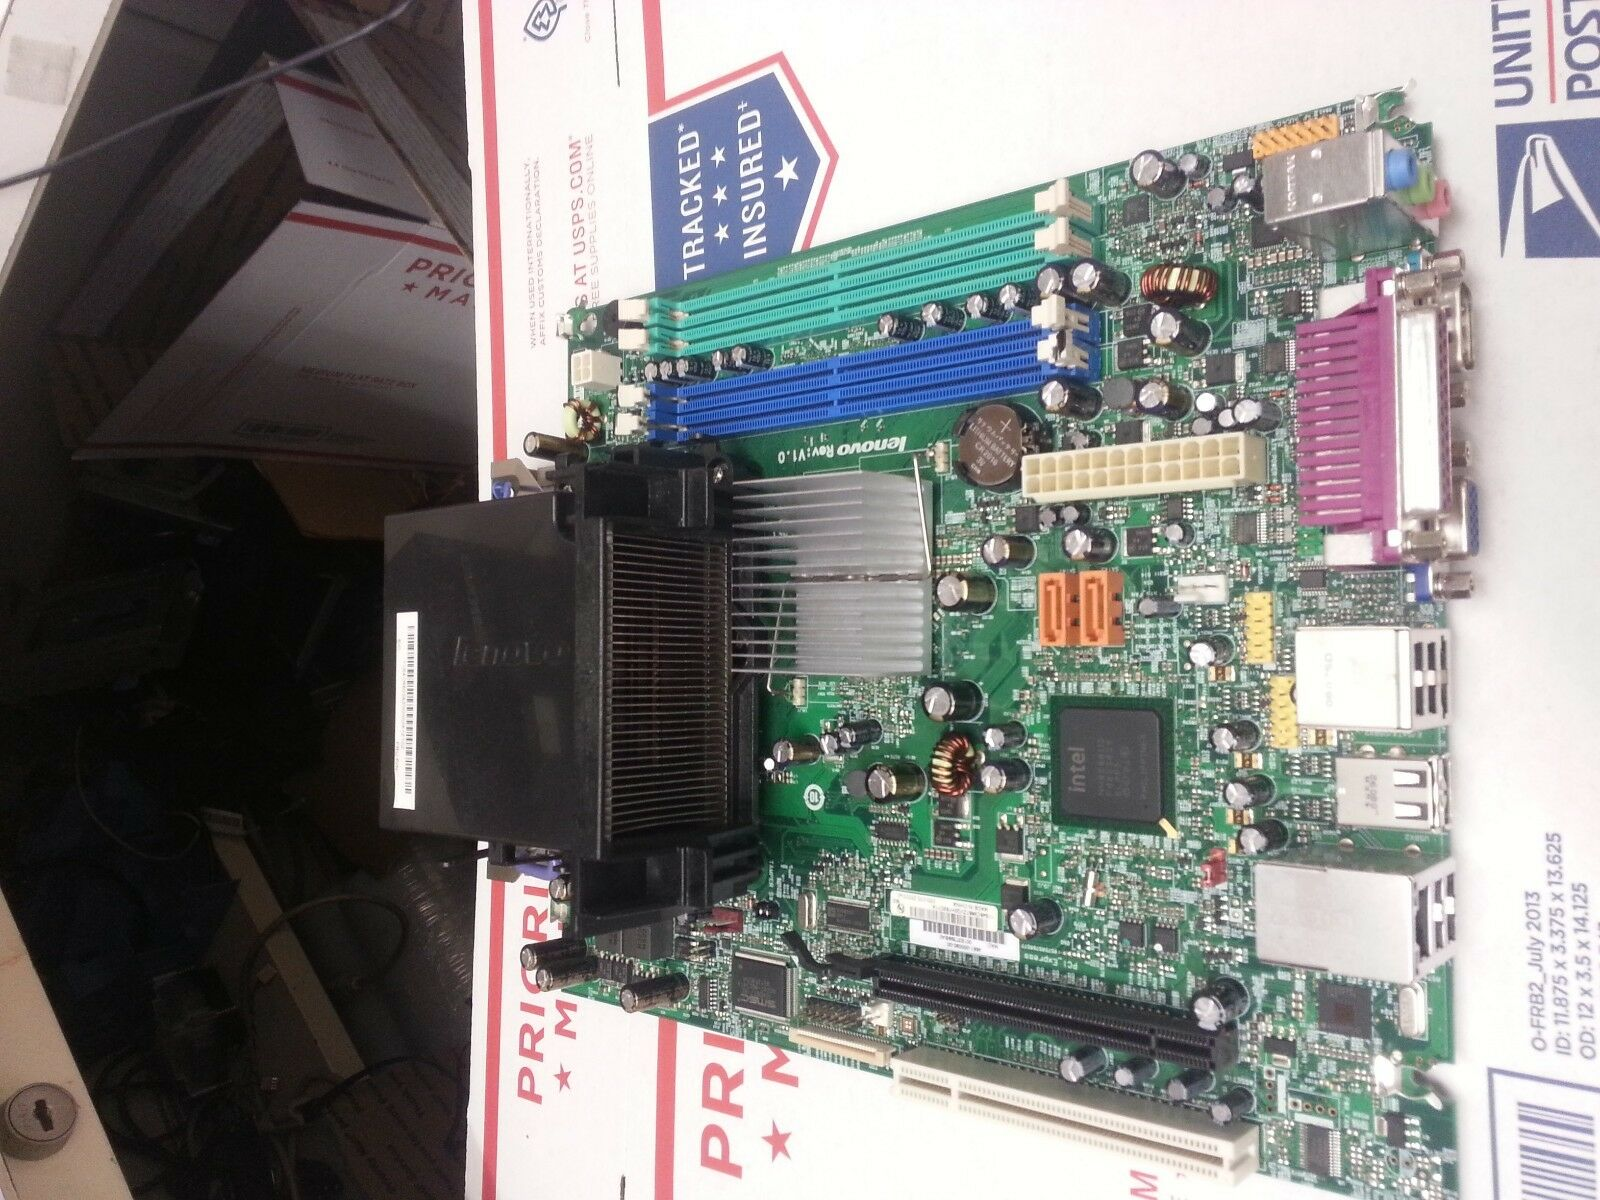 87H5128 Lenovo ThinkCentre M57 System Board AMT 45c1760 CPU C2d 2 66ghz bo